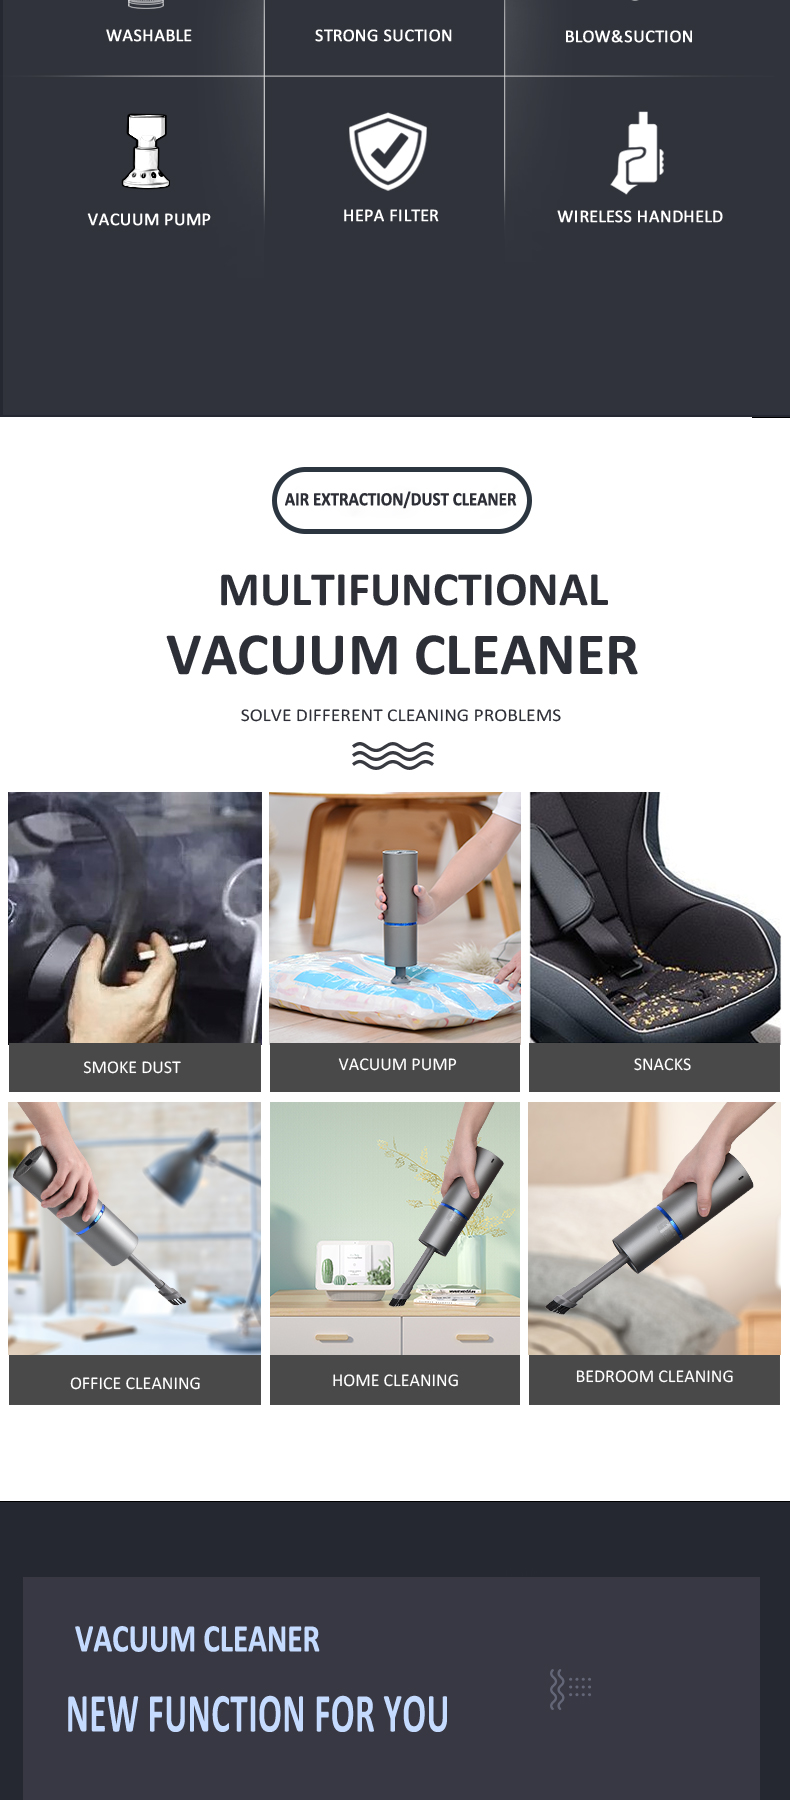 portable car vacuum cleaner pump air remove the vacuum bag keyboard computer cleaner sofa bed sofa rechargeable wireless use